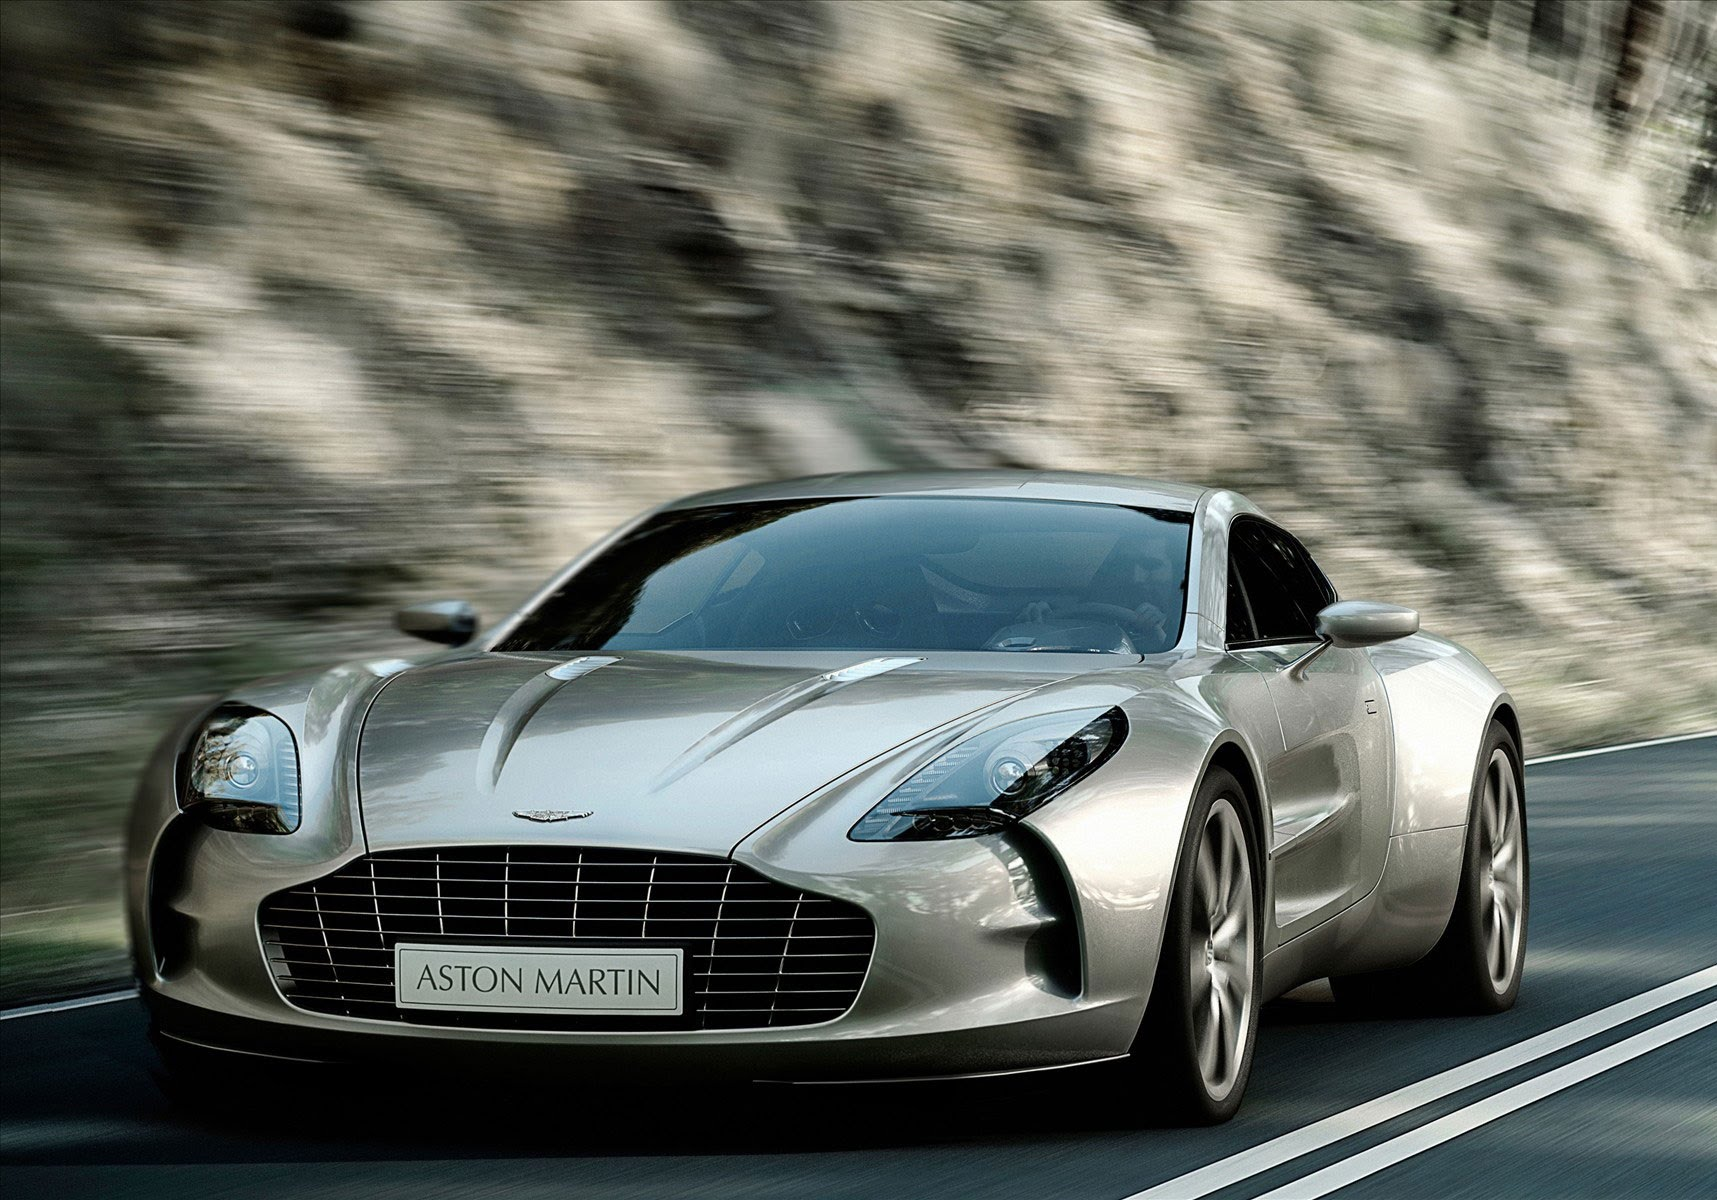 Aston Martin One-77 widescreen wallpapers